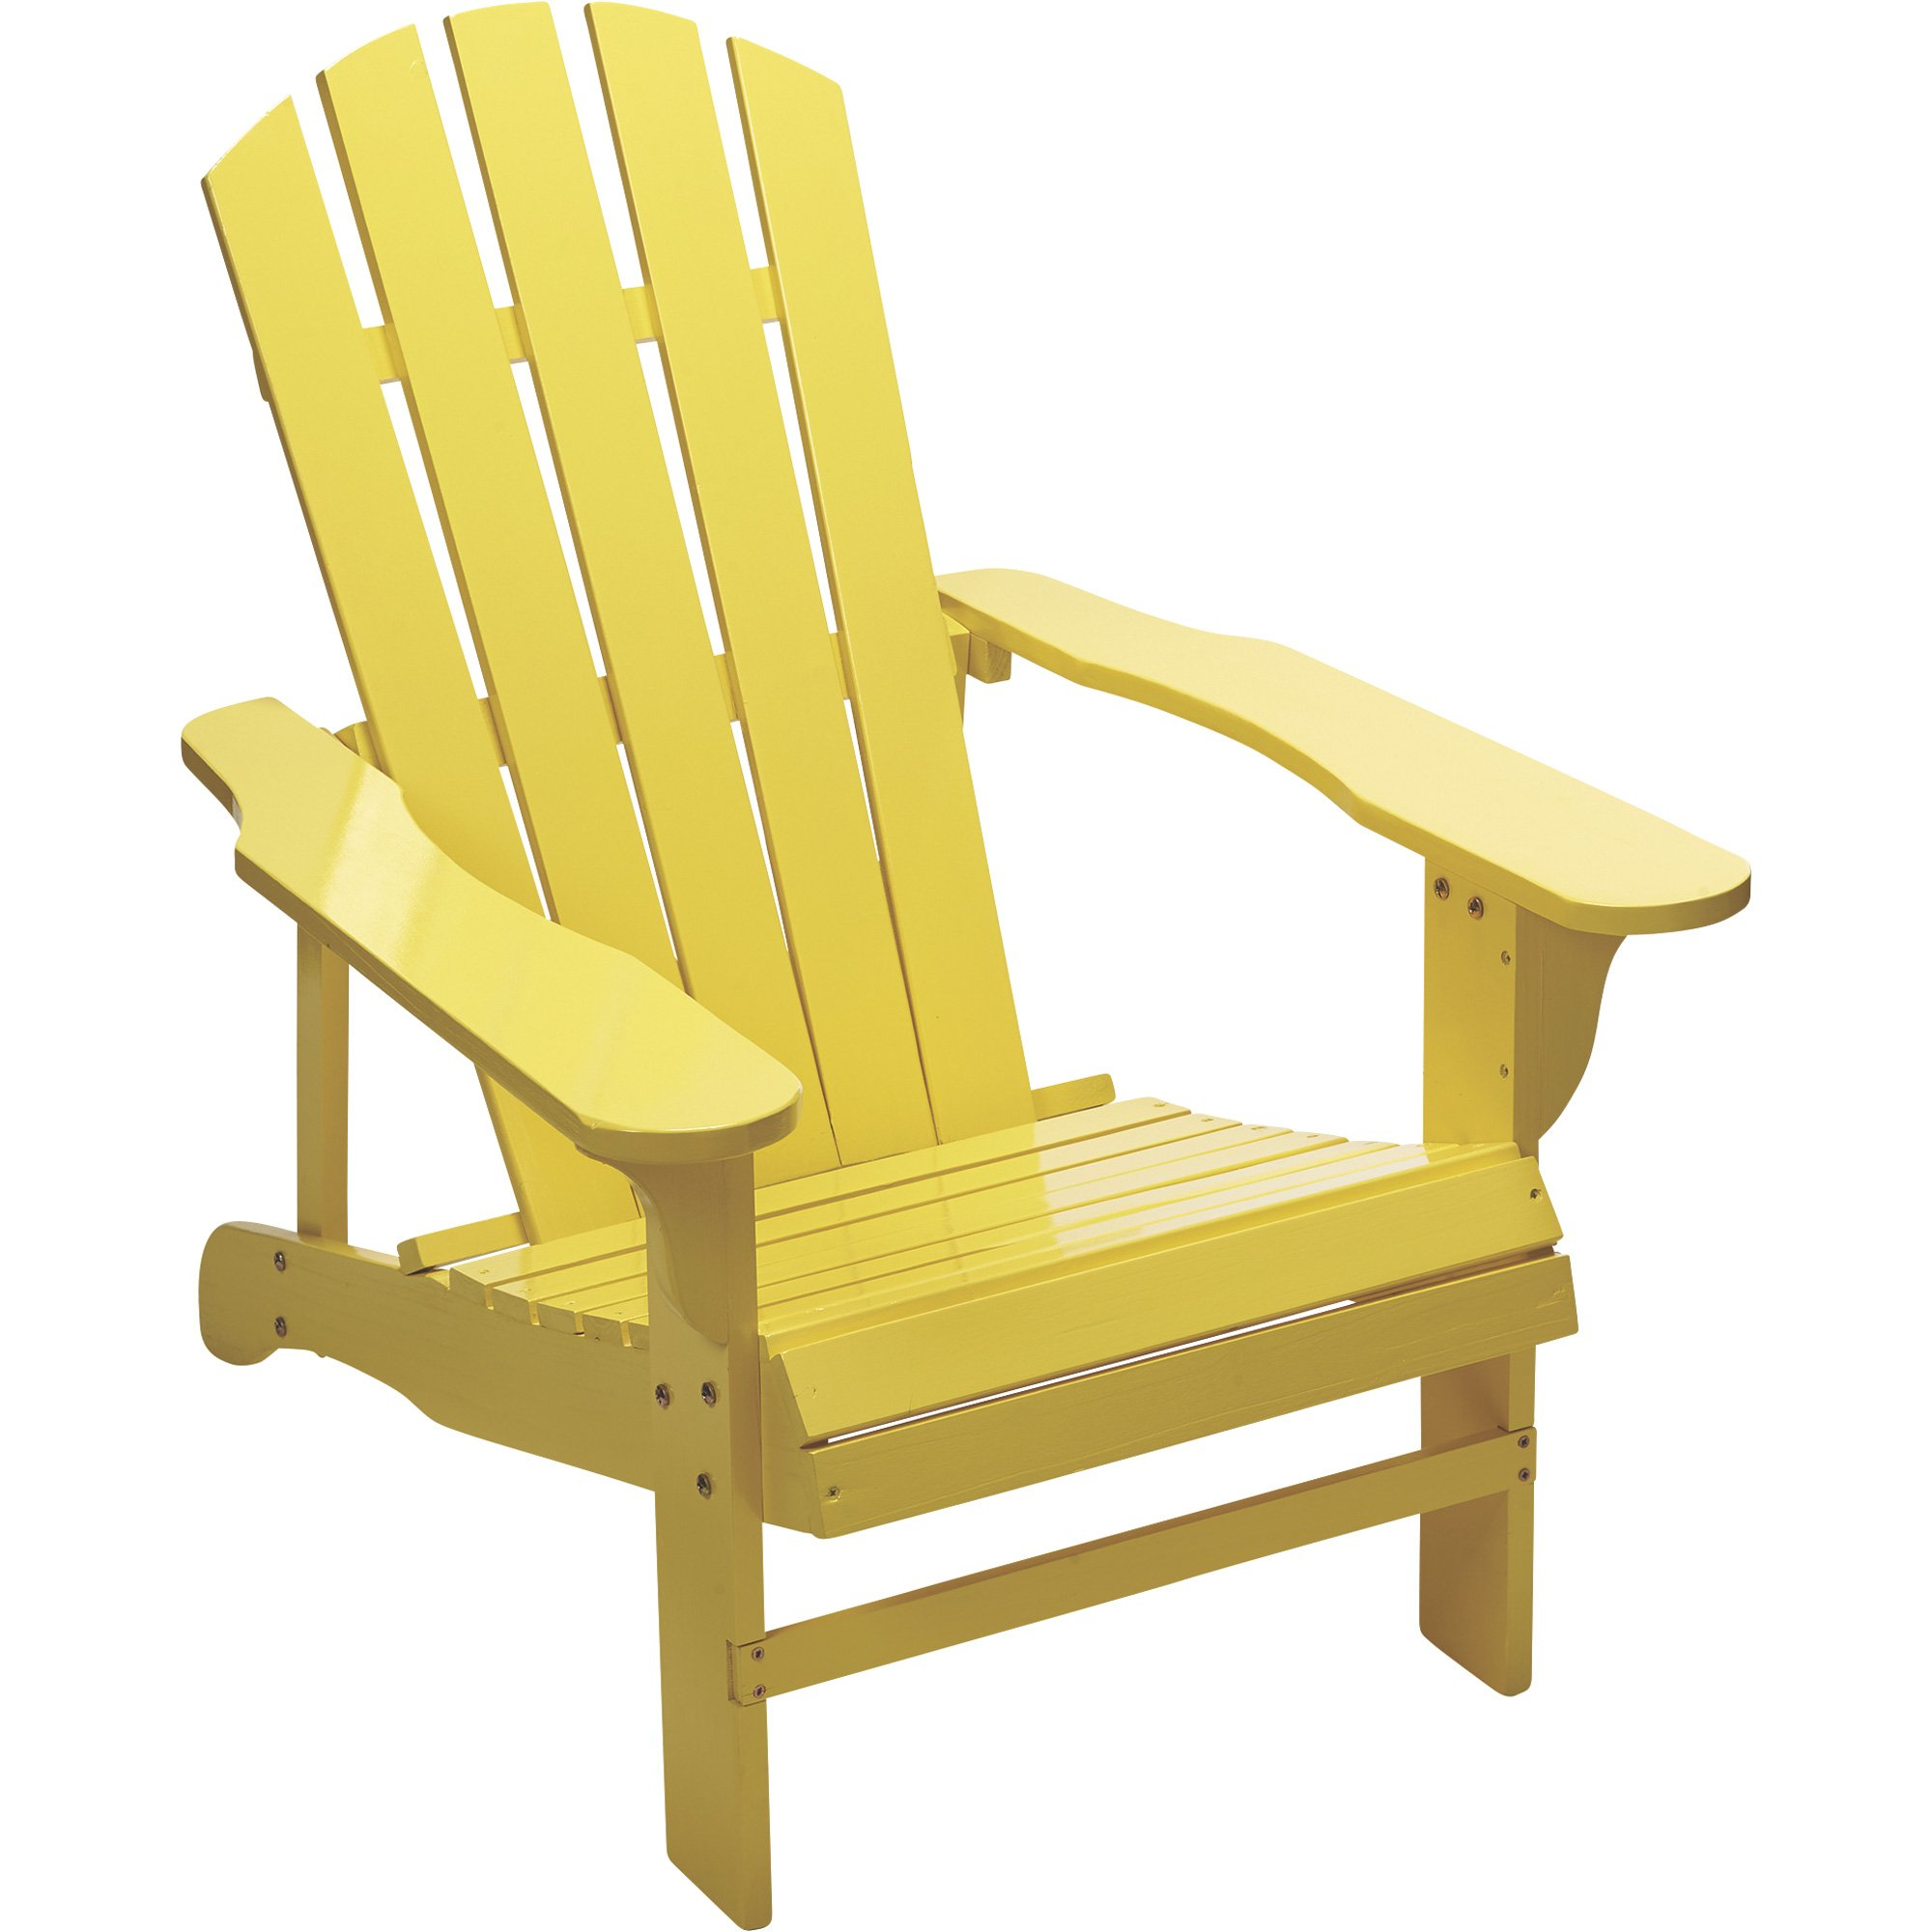 Leigh Country Classic Yellow Painted Wood Adirondack Chair by Leigh Country